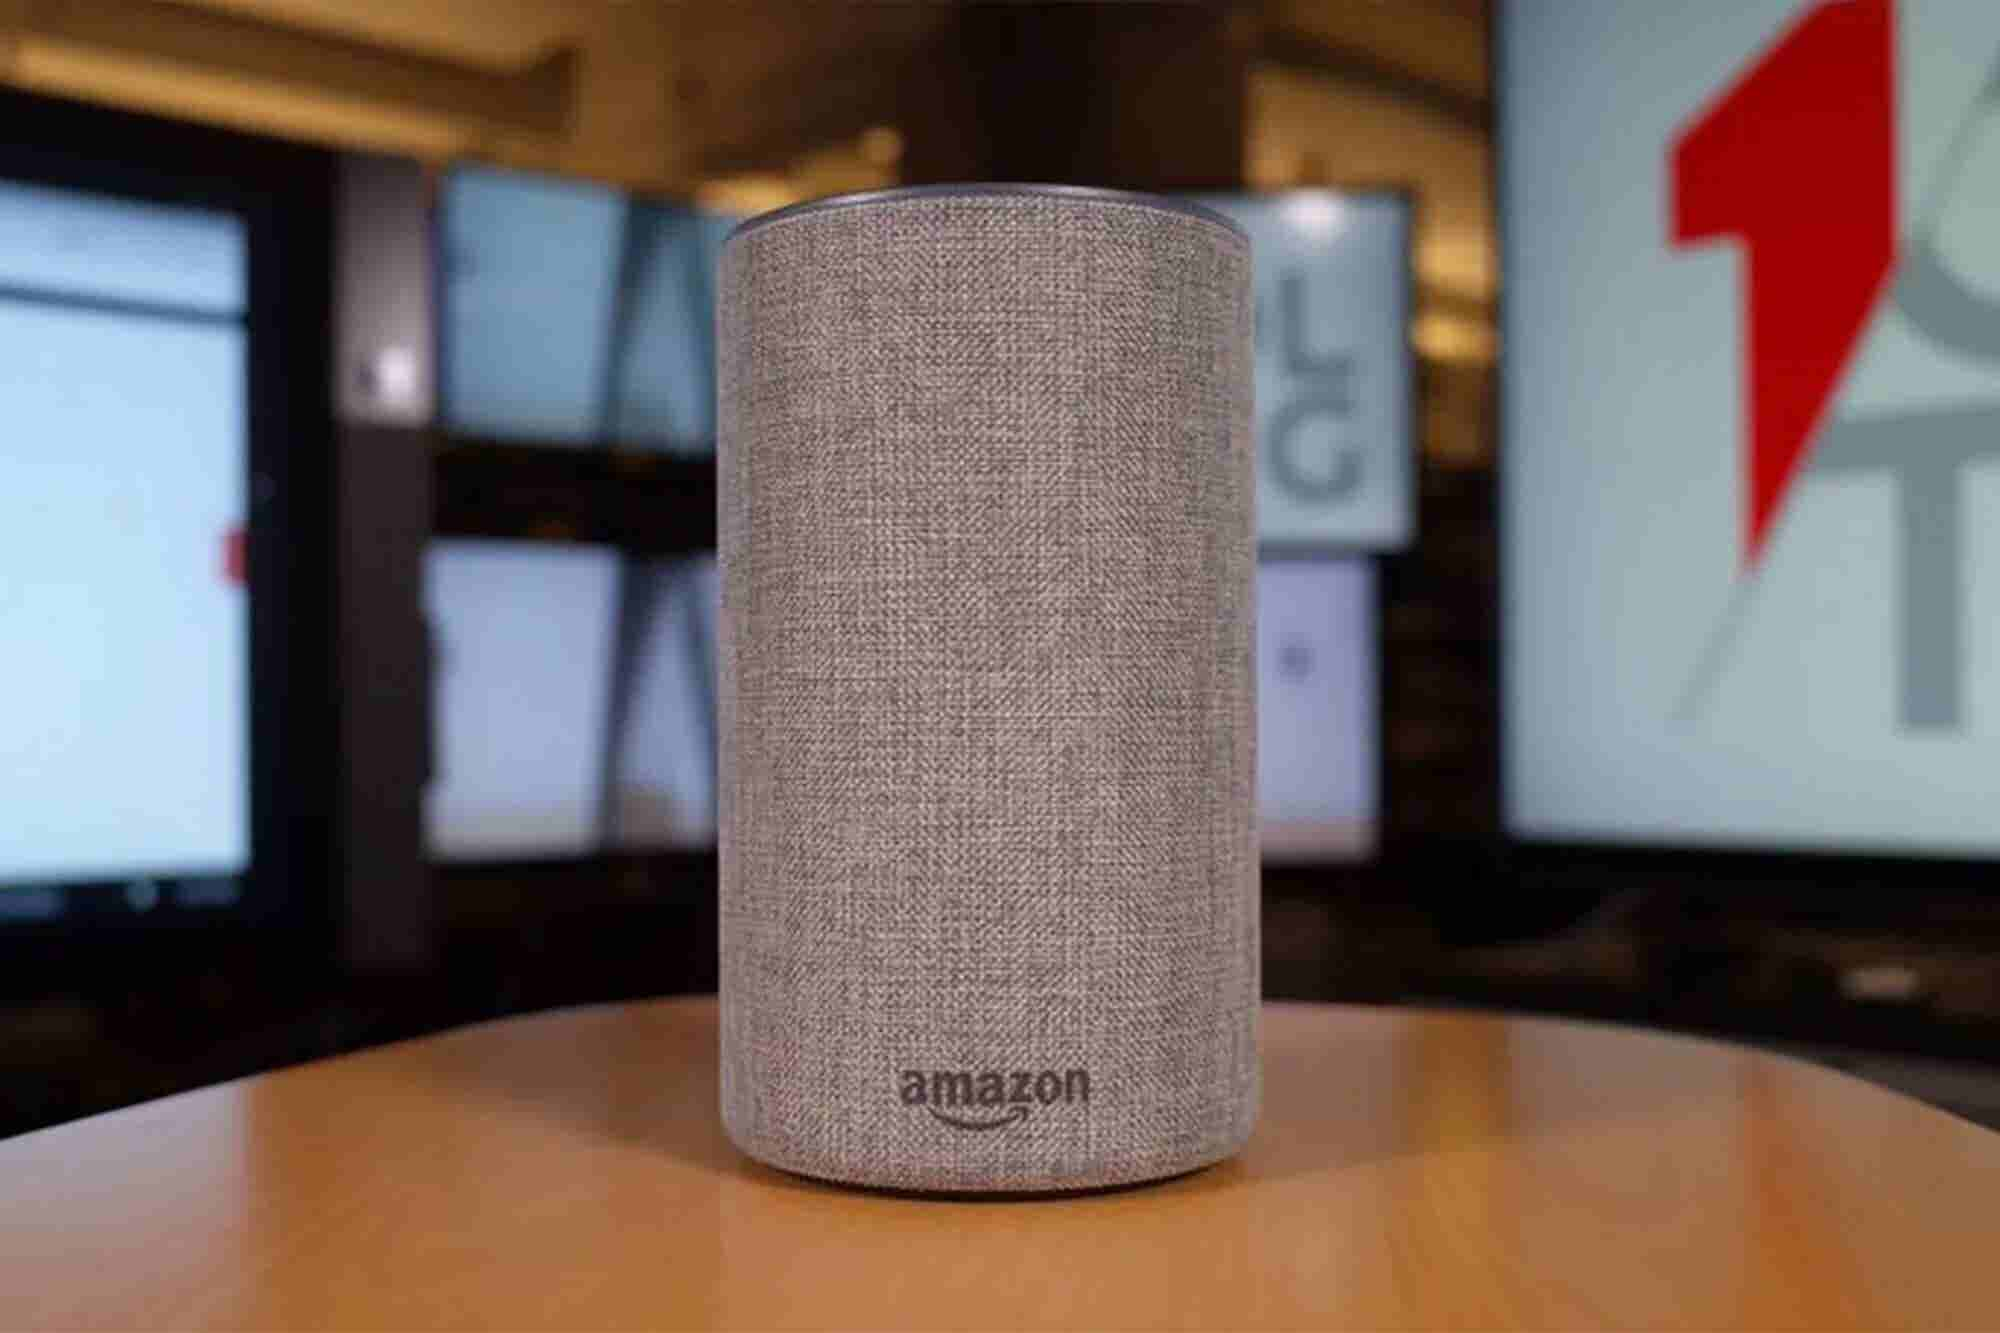 Amazon Pays Thousands of People to Listen to Alexa Voice Recordings